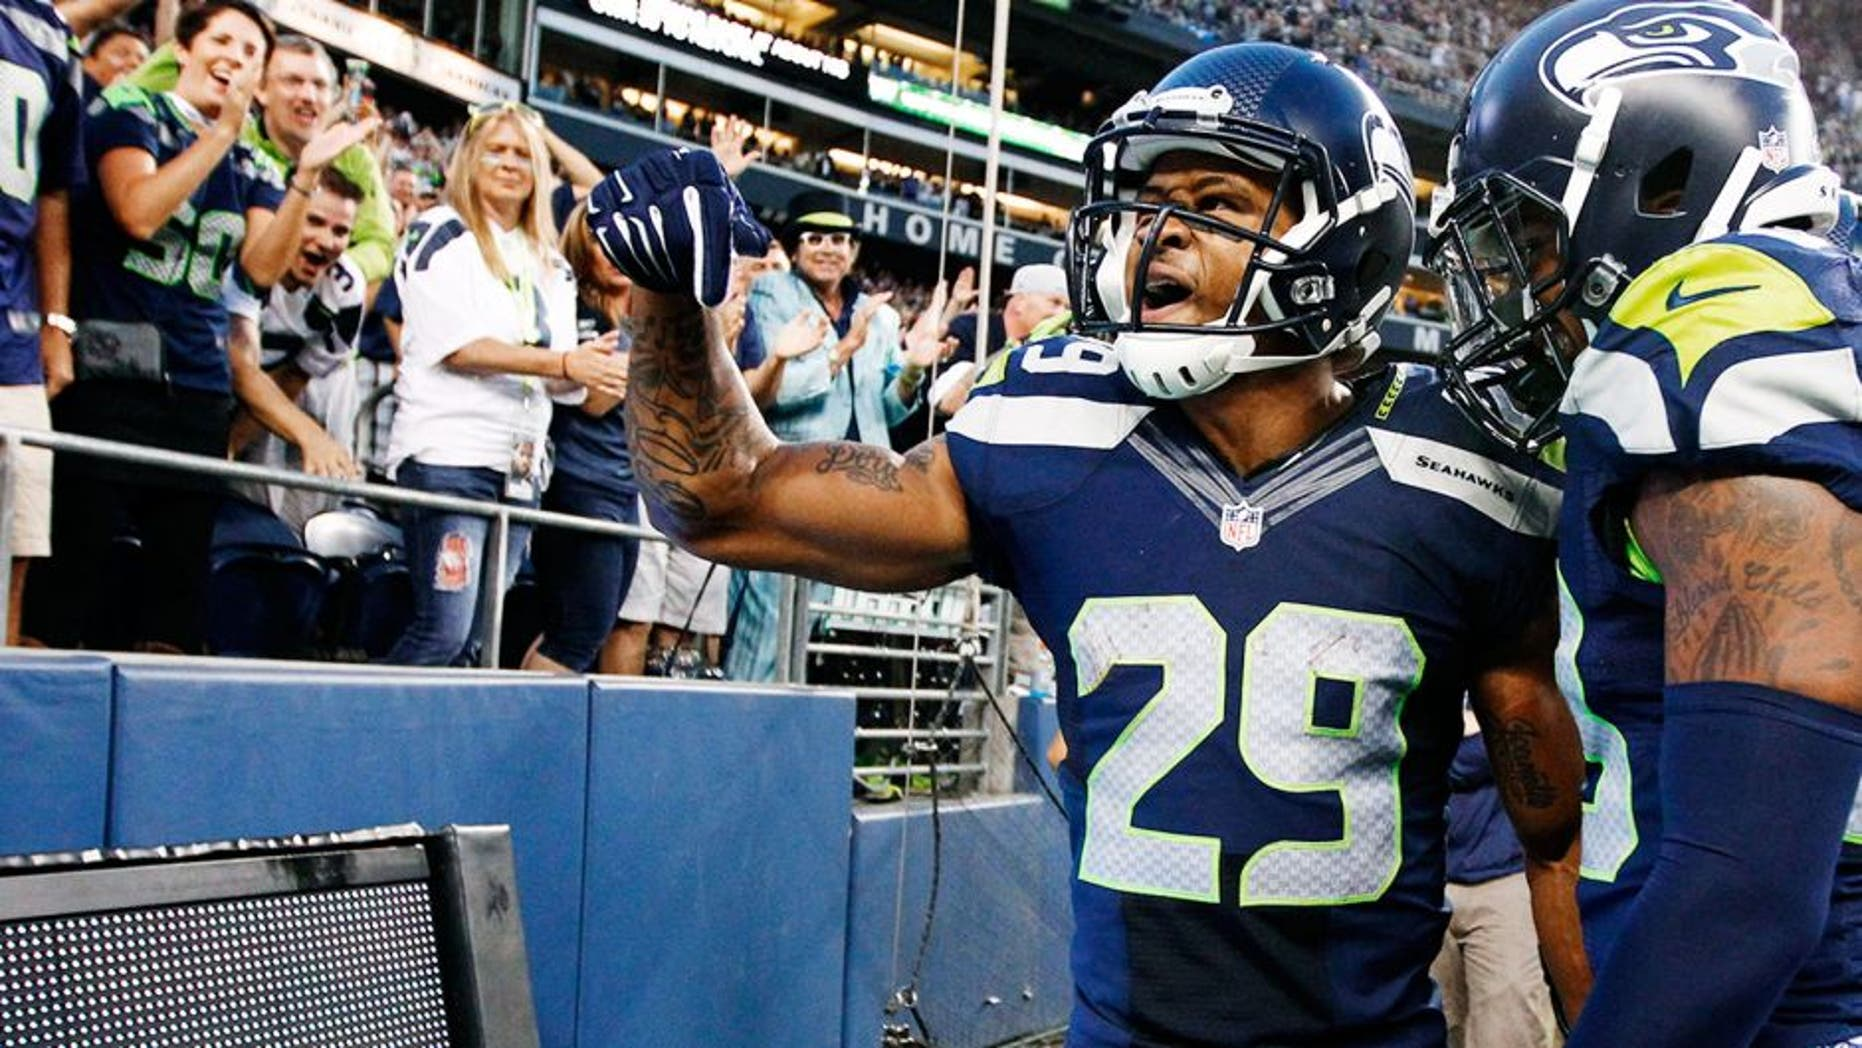 Aug 22, 2014; Seattle, WA, USA; Seattle Seahawks free safety Earl Thomas (29) celebrates after a 59-yard punt return against the Chicago Bears during the second quarter at CenturyLink Field. Seattle Seahawks strong safety Jeron Johnson (23) is at right. Mandatory Credit: Joe Nicholson-USA TODAY Sports